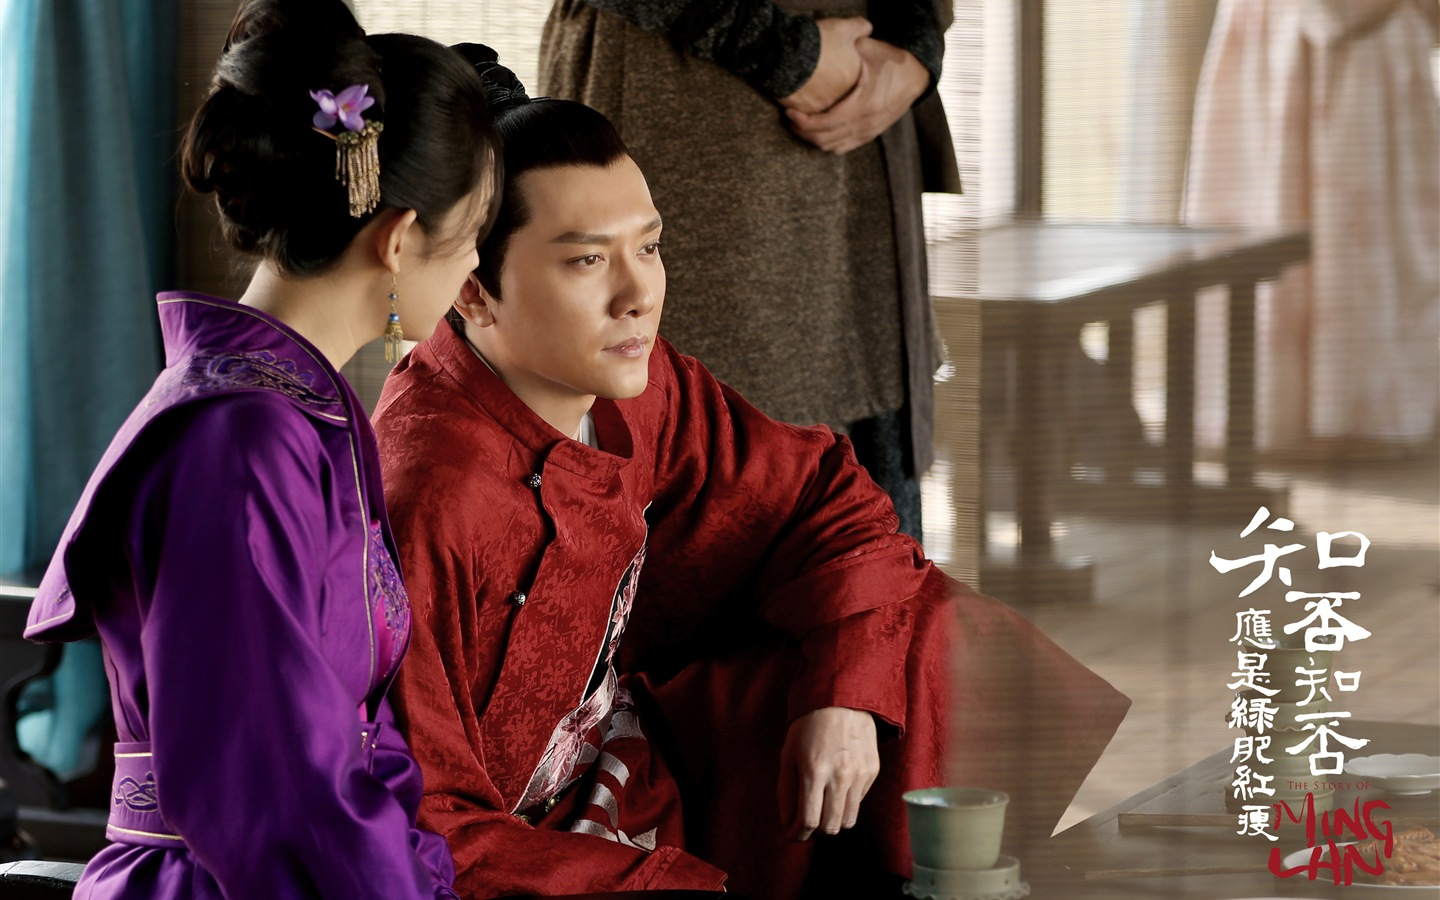 The Story Of MingLan, TV series HD wallpapers #42 - 1440x900